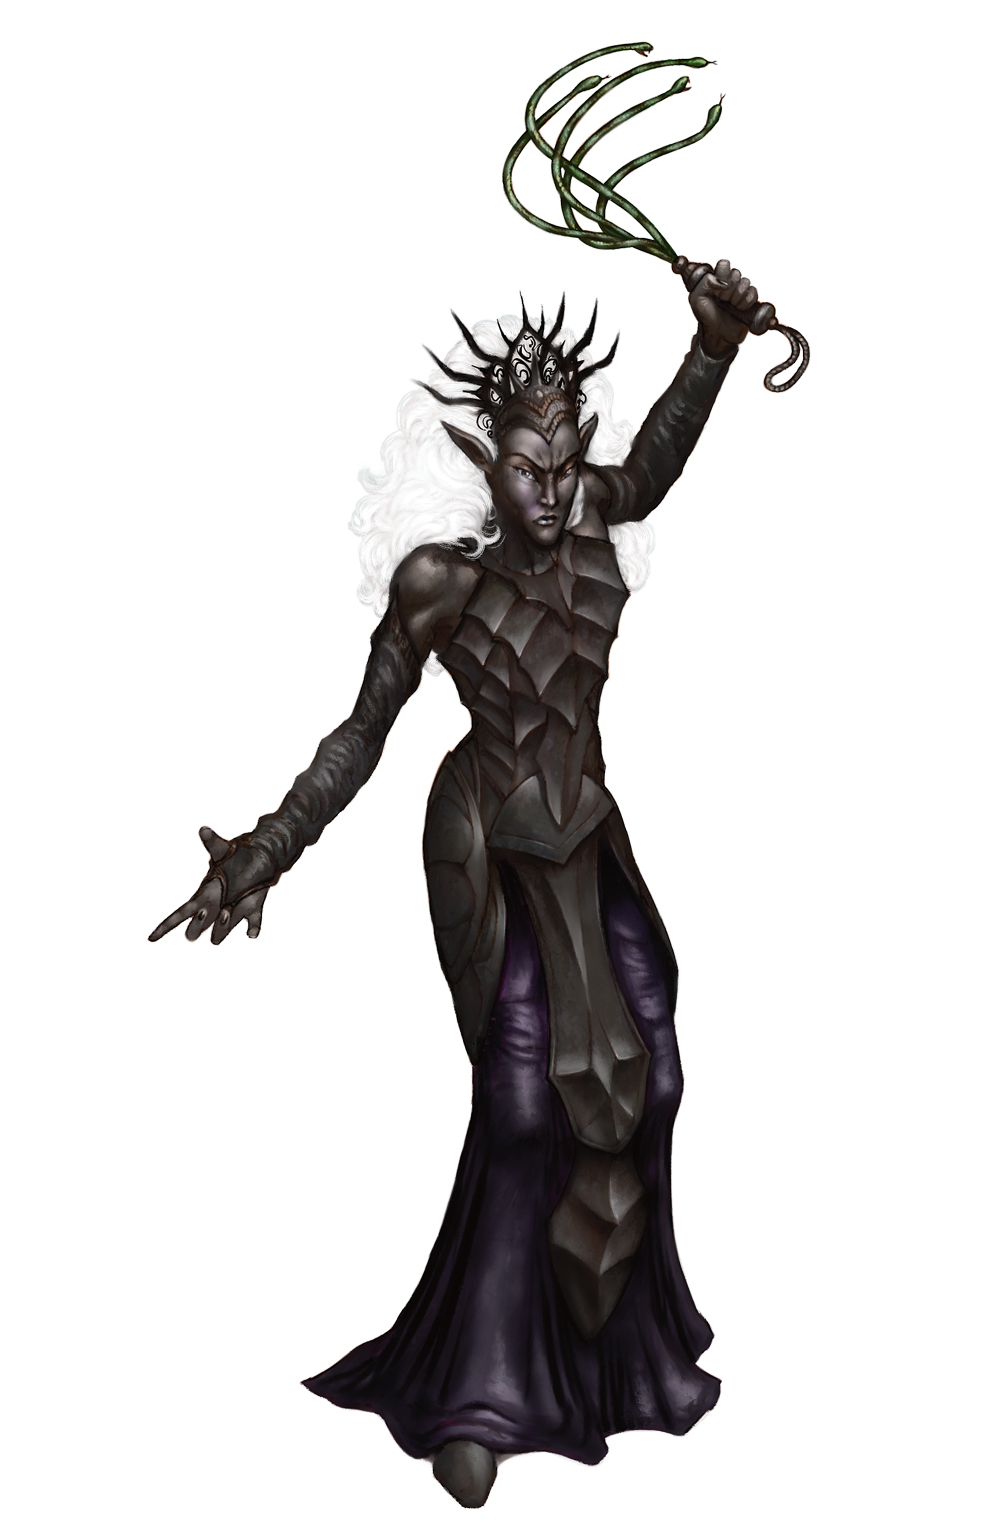 Drow | Forgotten Realms Wiki | FANDOM powered by Wikia